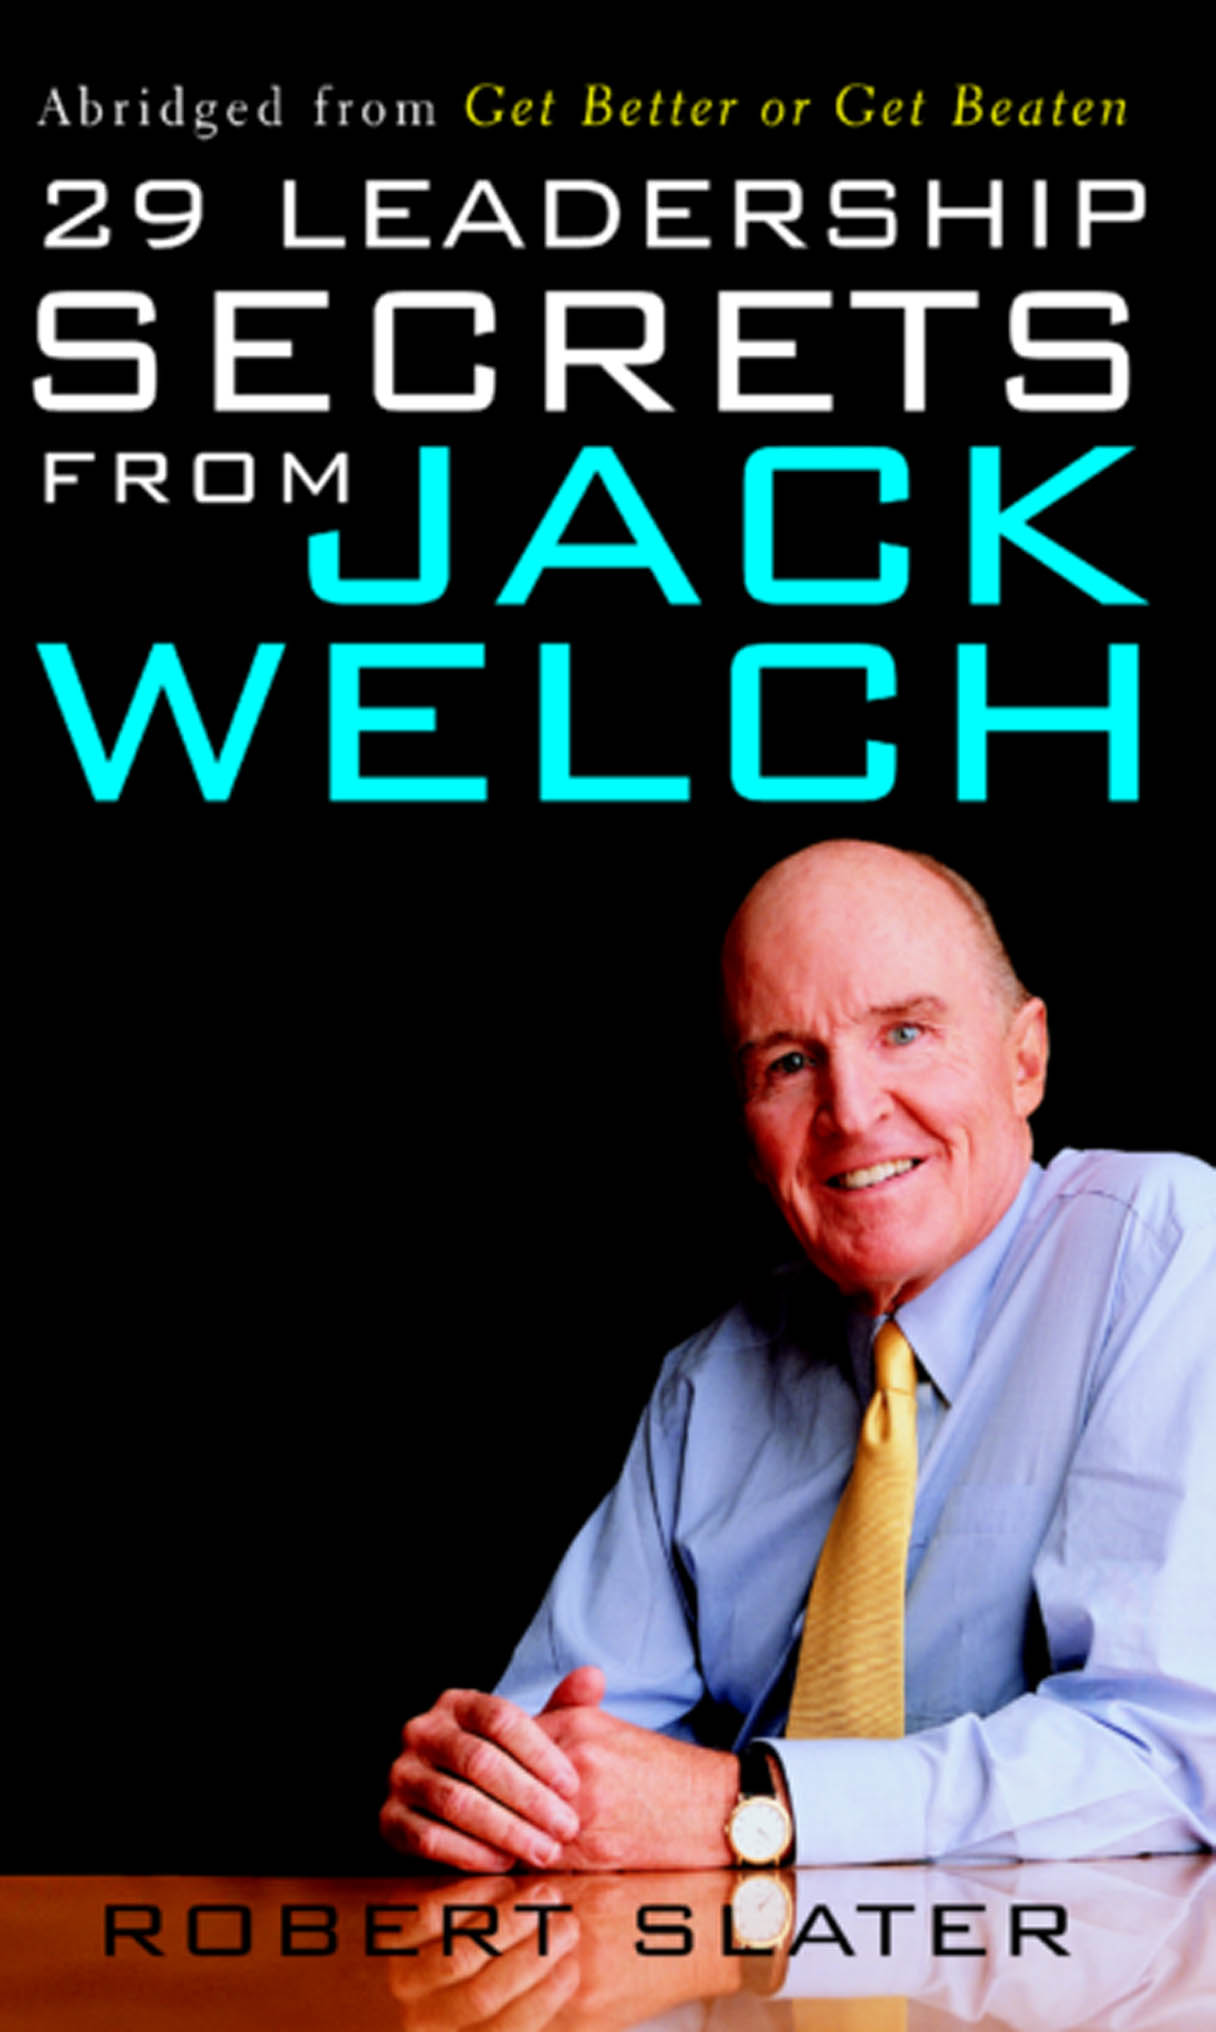 Download Ebook 29 Leadership Secrets From Jack Welch by Robert Slater Pdf